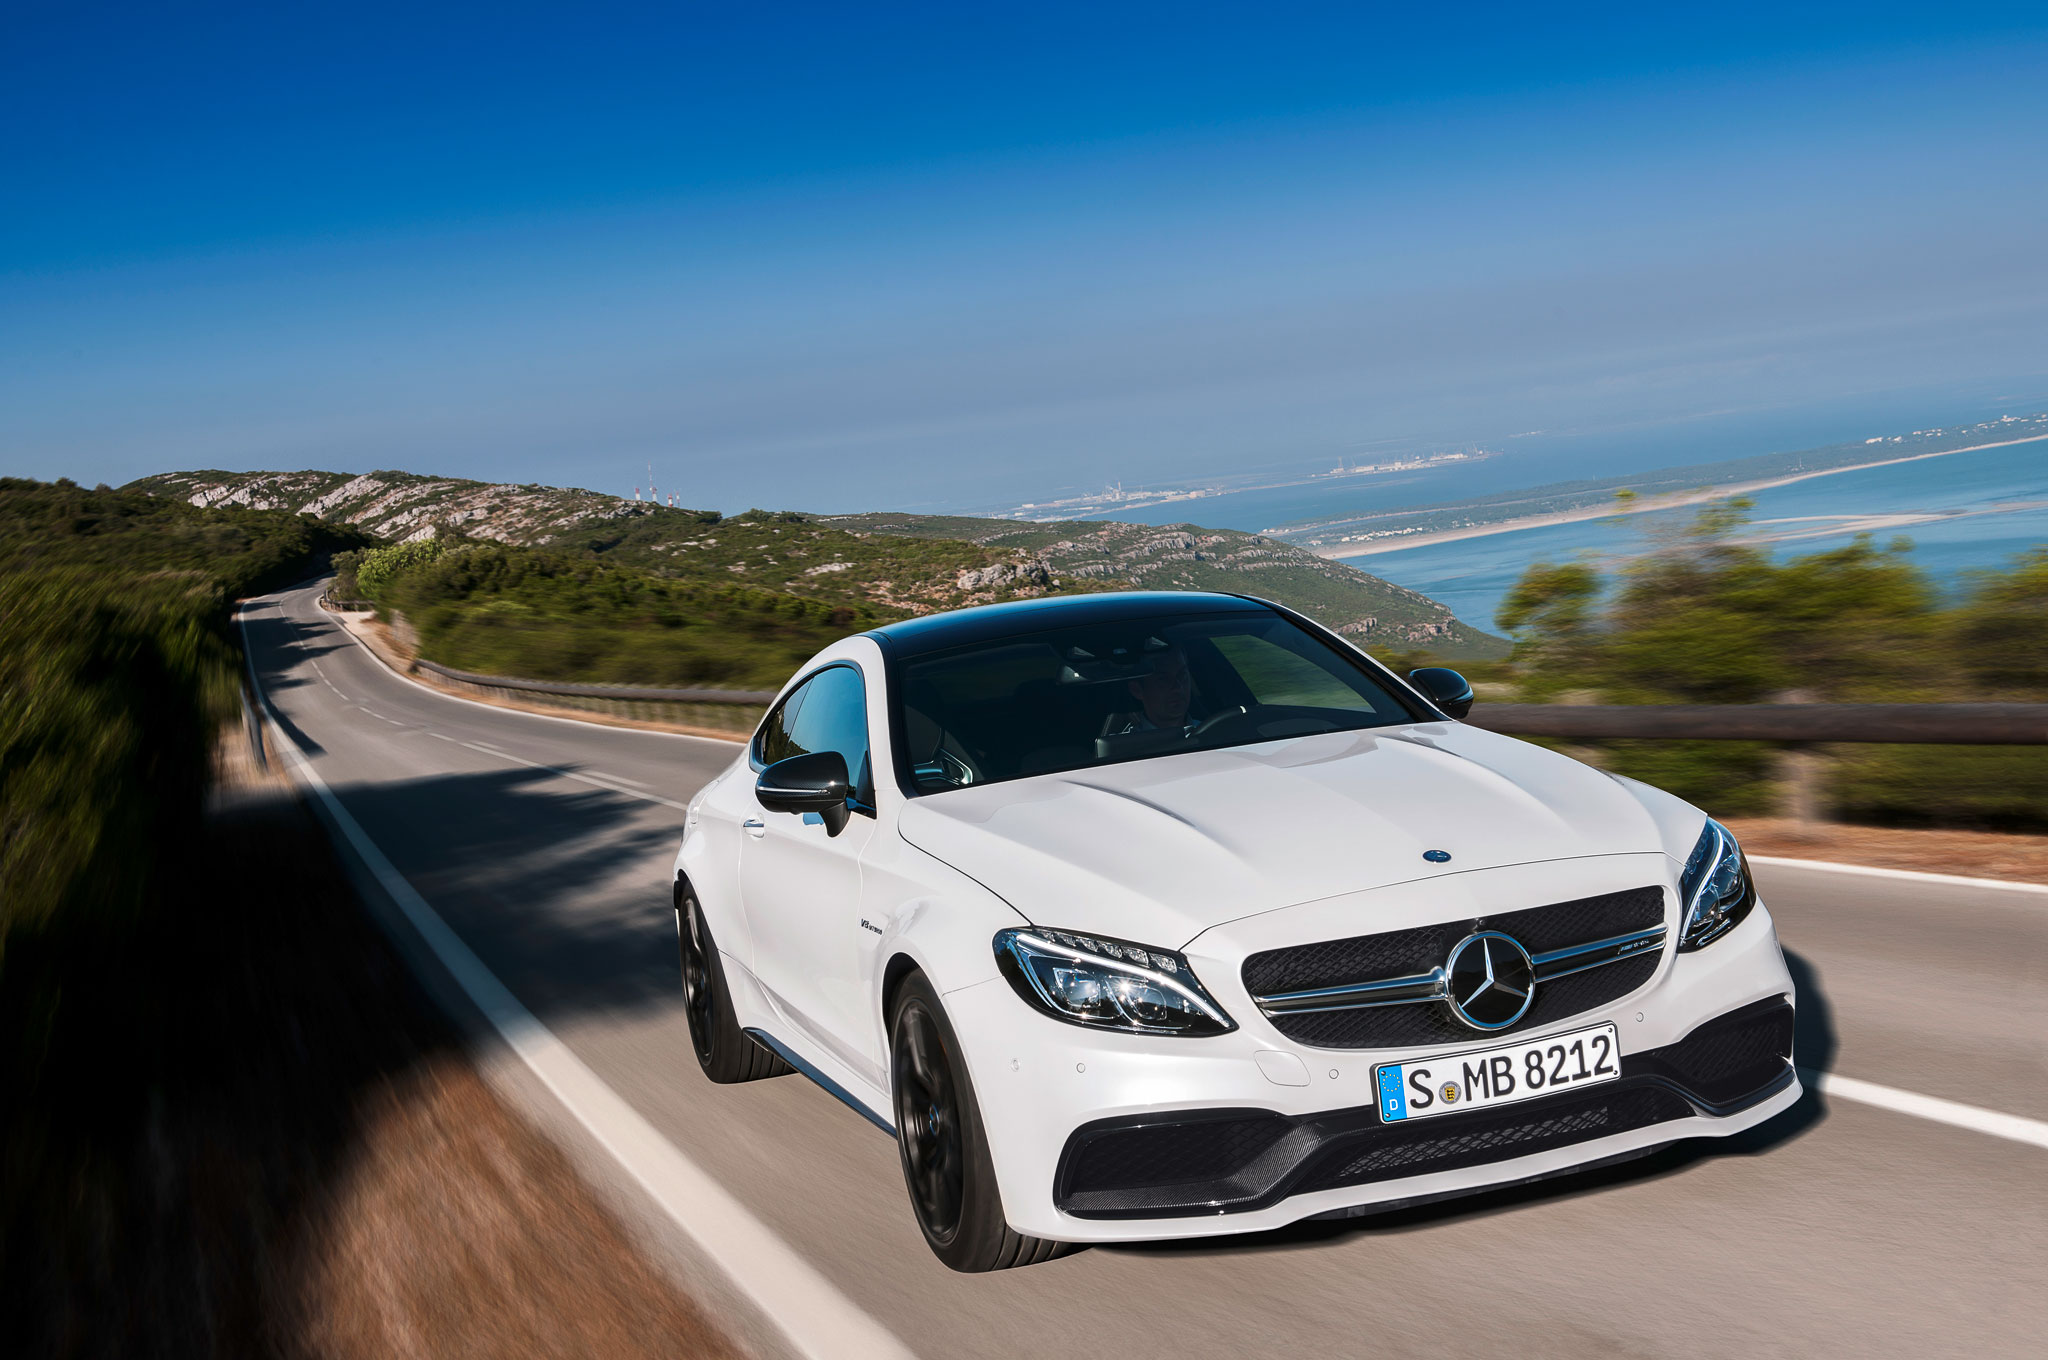 2017 MercedesAMG C63 Coupe Brings TwinTurbo Punch with Up to 503 HP